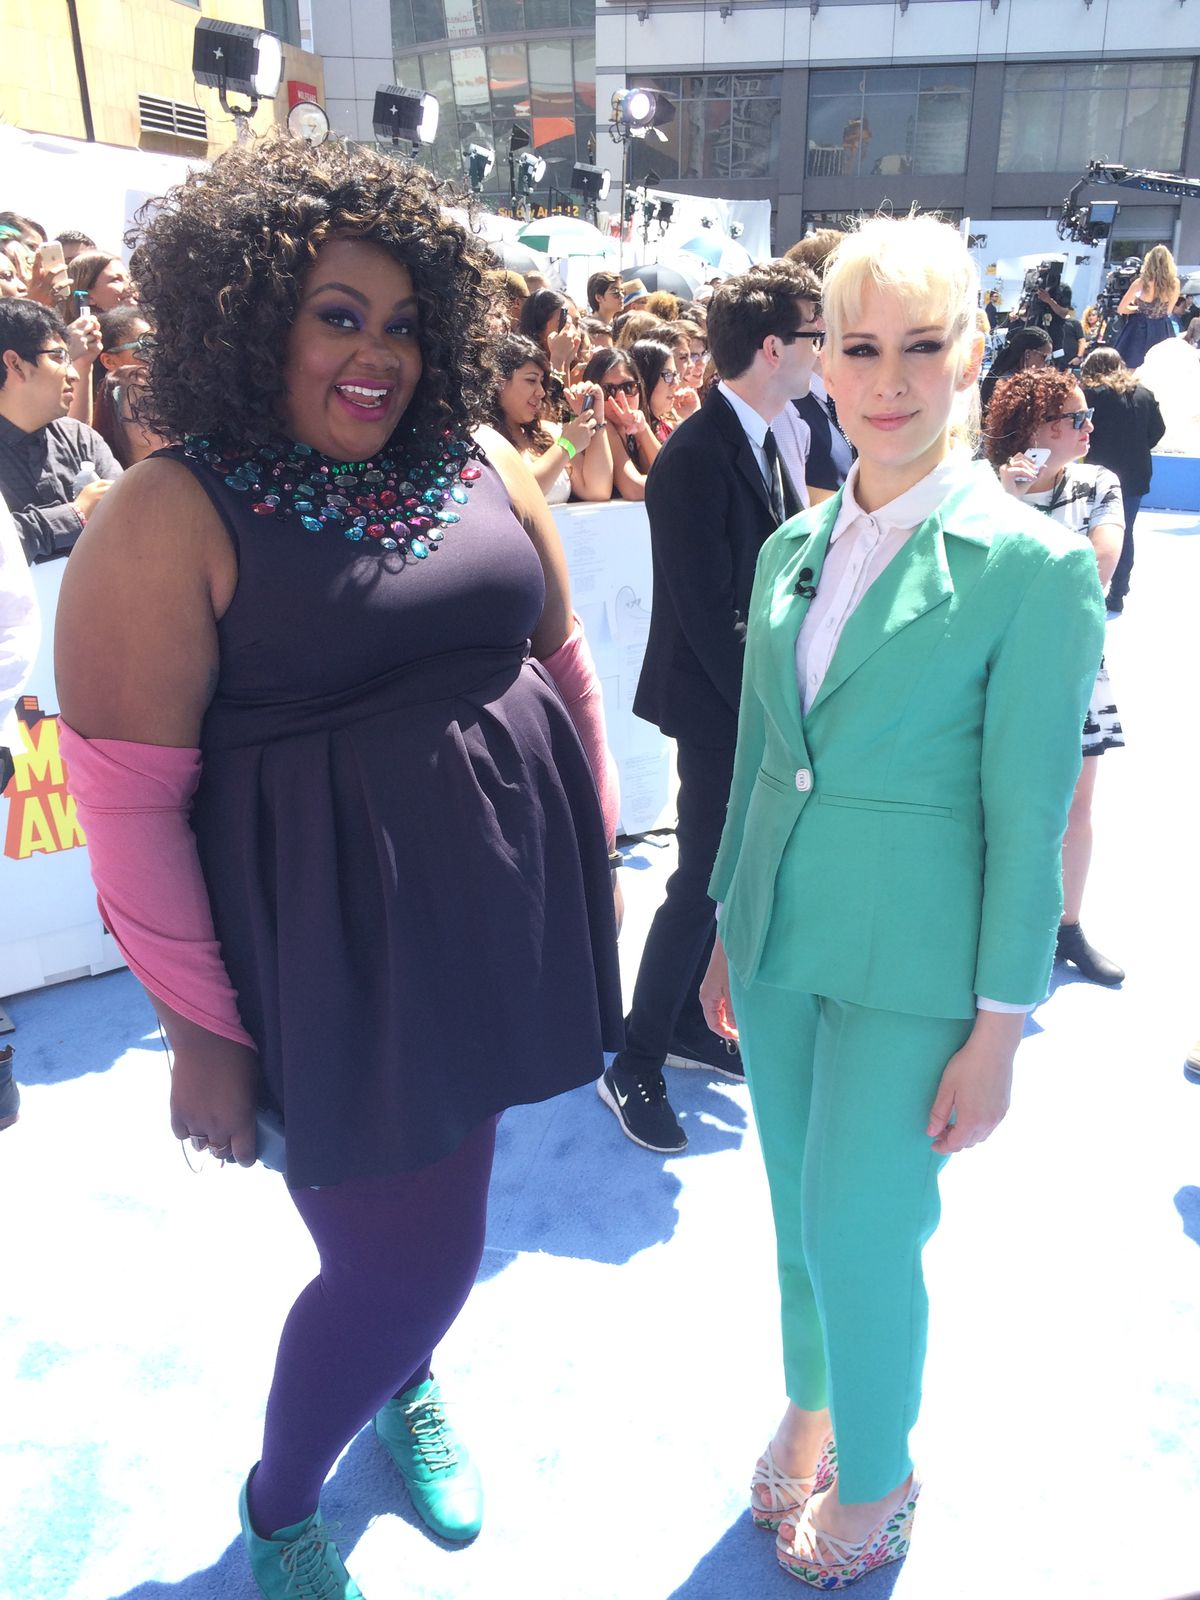 Plus size comedienne Nicole Byer hosted the Red Carpet Review at the MTV Movie Awards 2015.